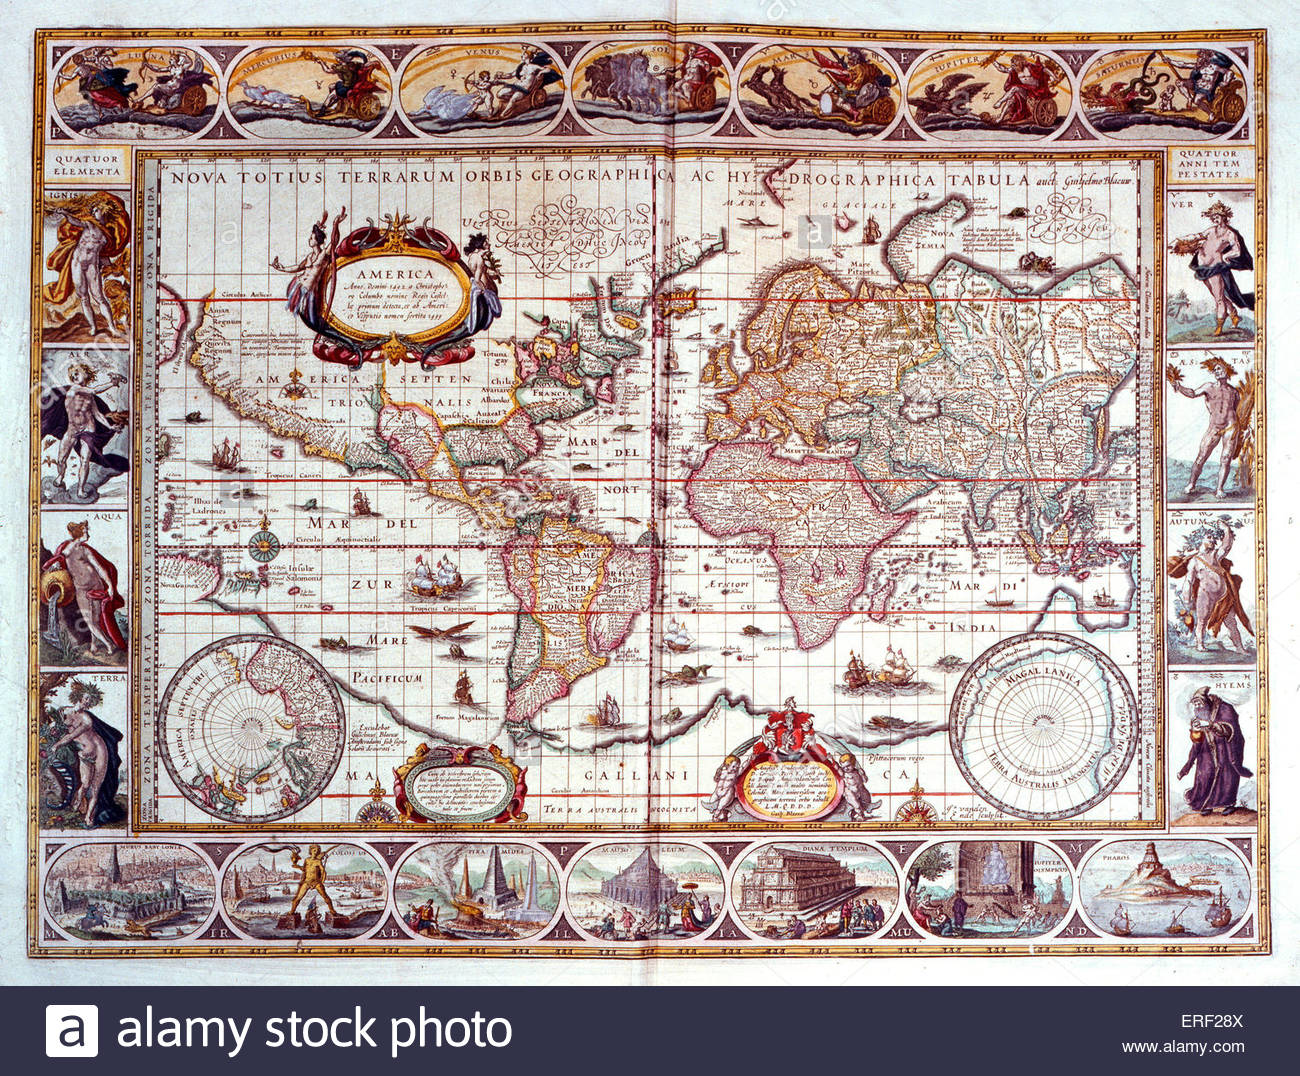 Early World Map by Willem Blaeu ('Nova totius terrarum orbis geographica ac hydrographica tabula'), 1645. - Stock Image